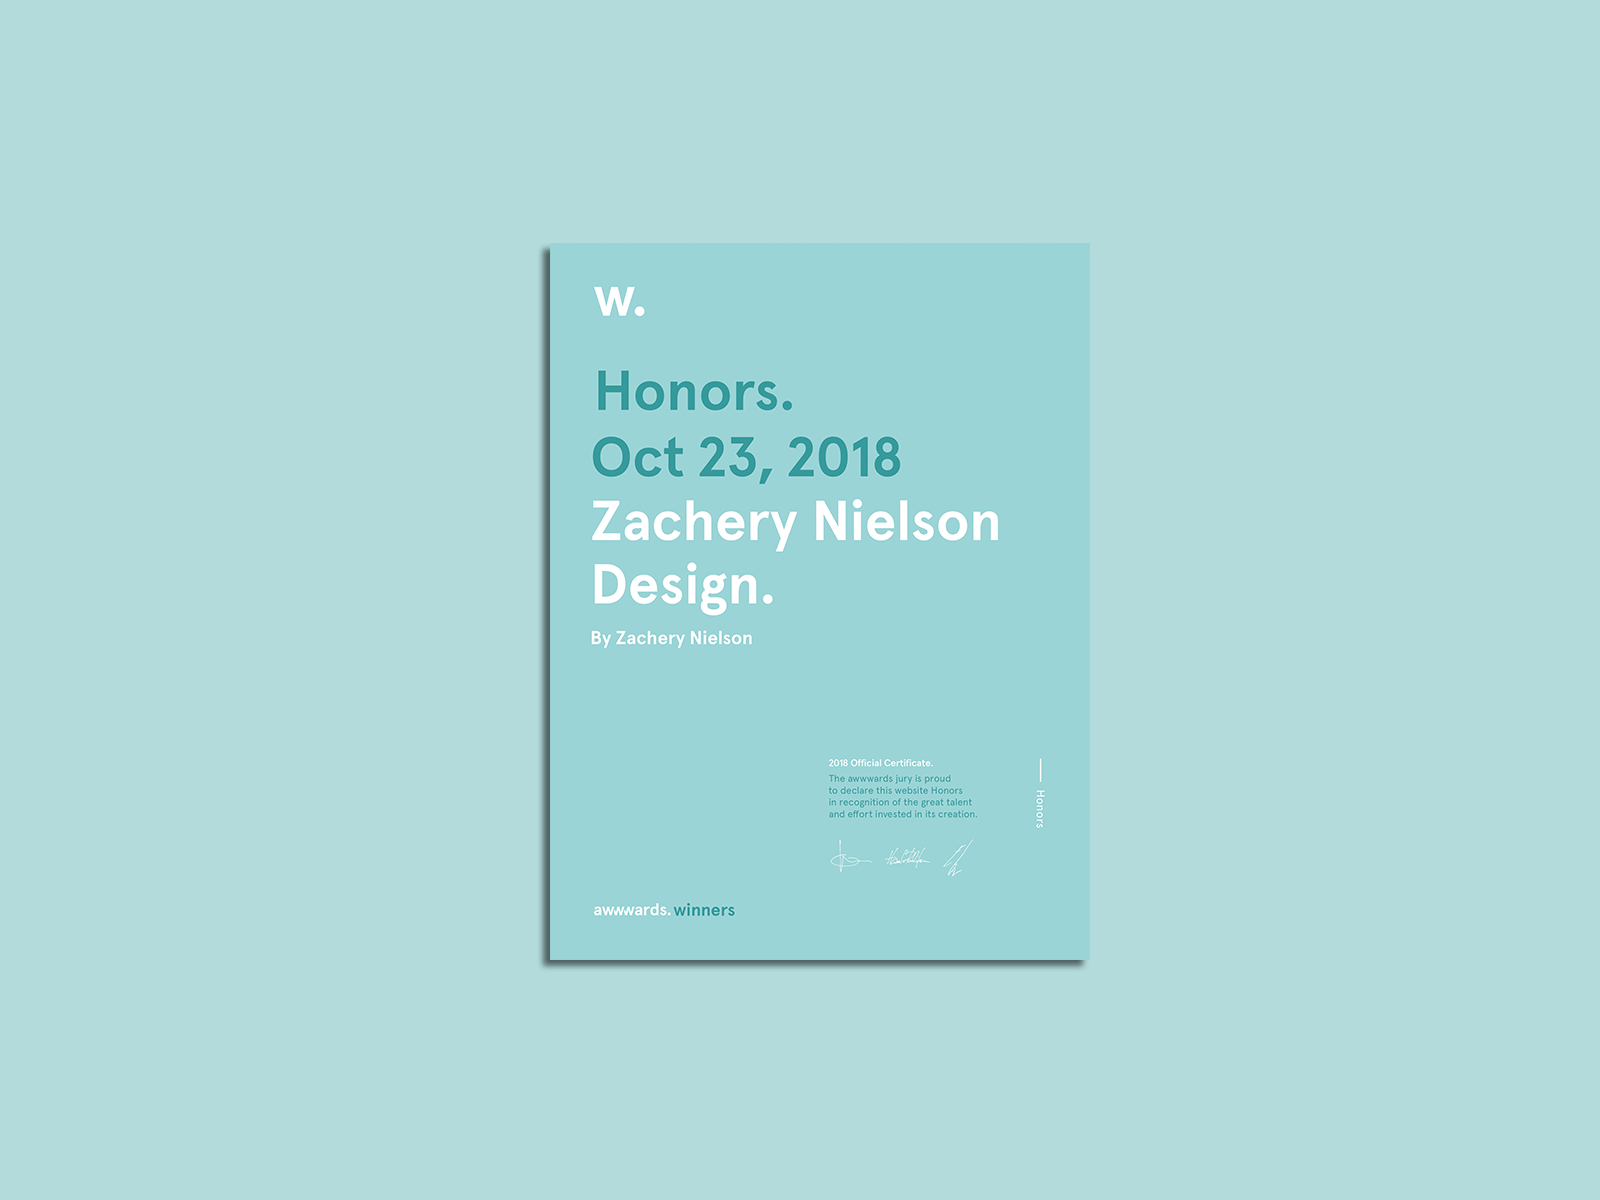 honors-award-dribbble